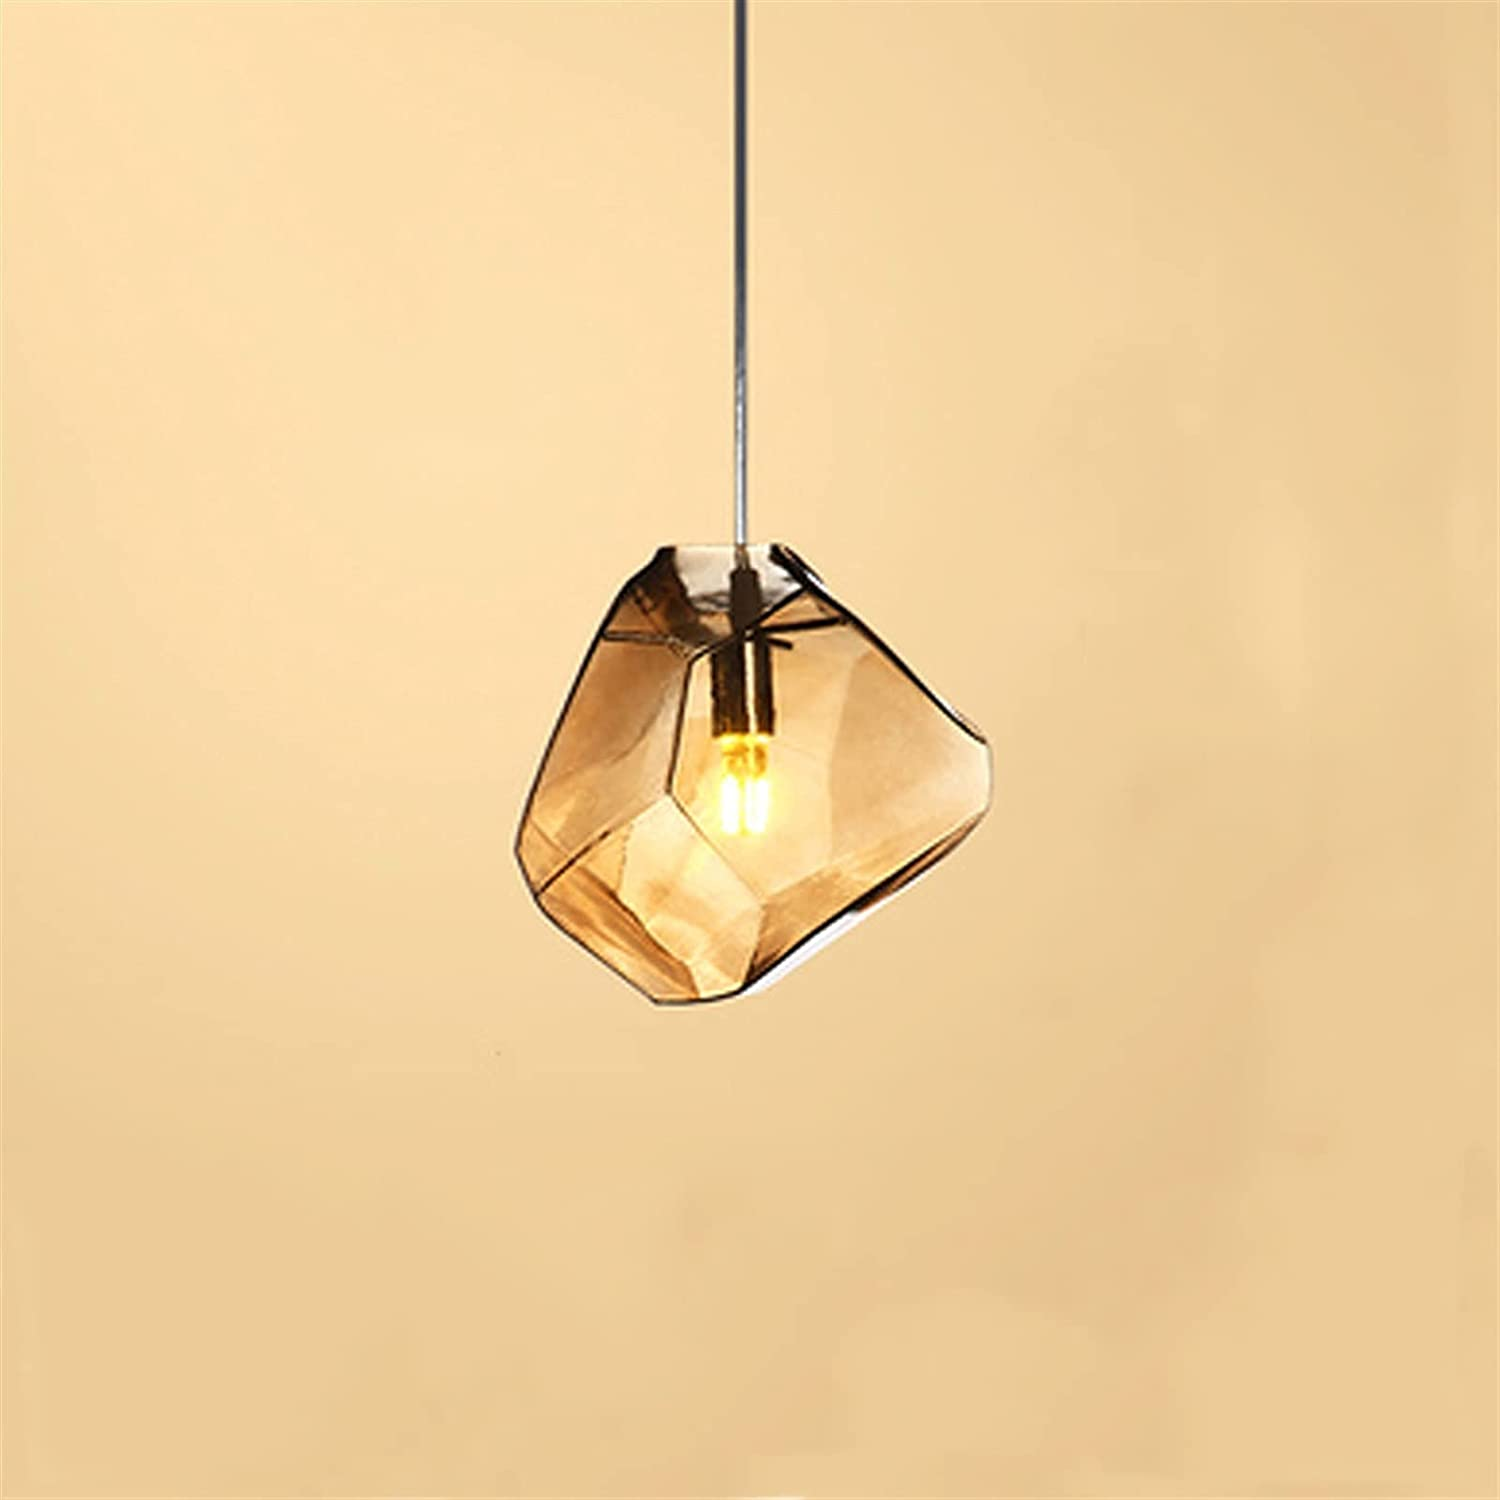 PDDUU Recommendation Ganeep Modern Colorful Super popular specialty store Pendant Crystal with C Shade Lights